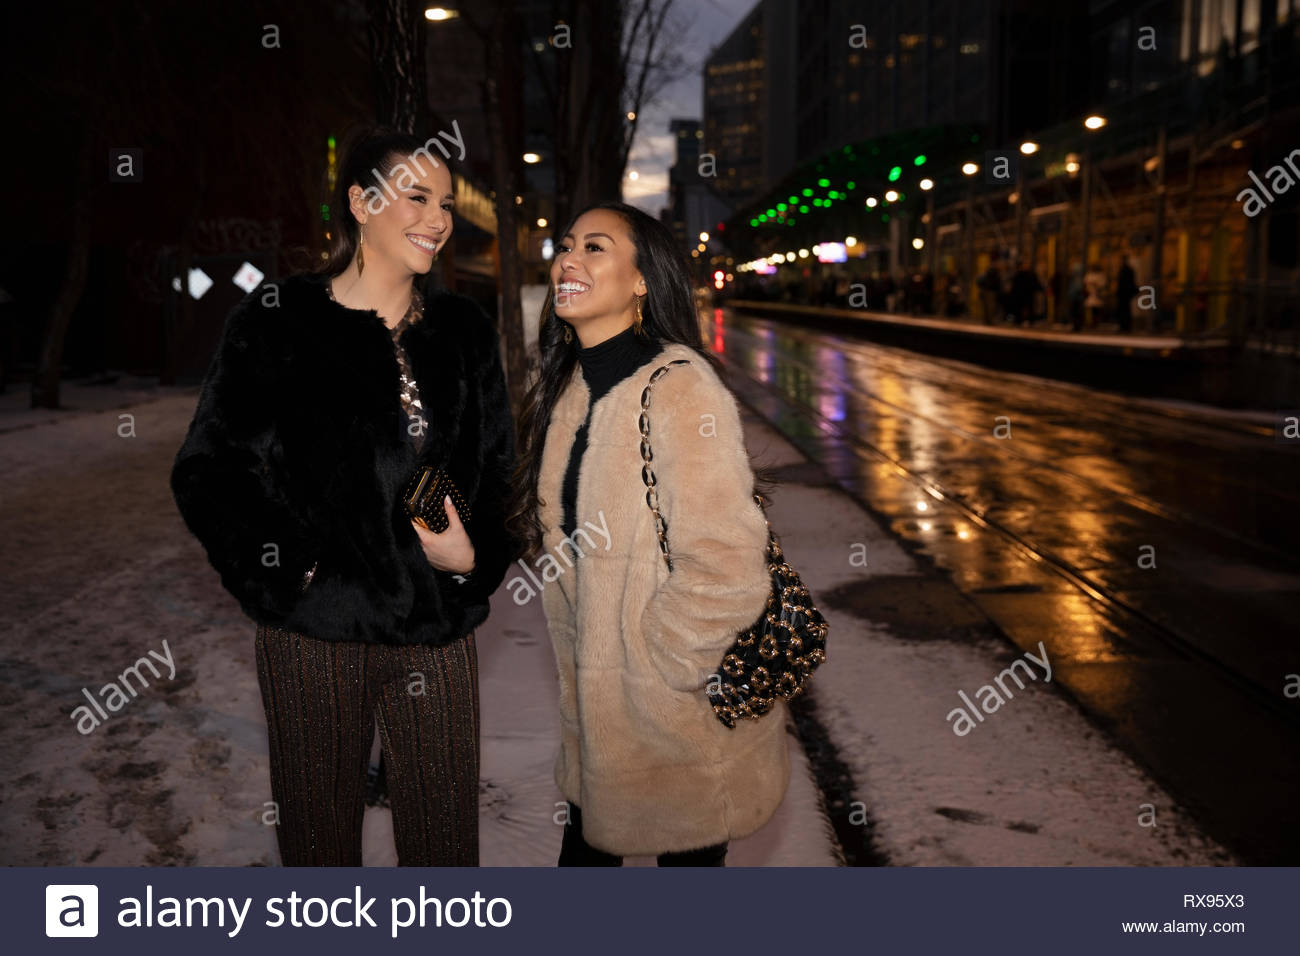 Women friends on snowy urban street at night - Stock Image